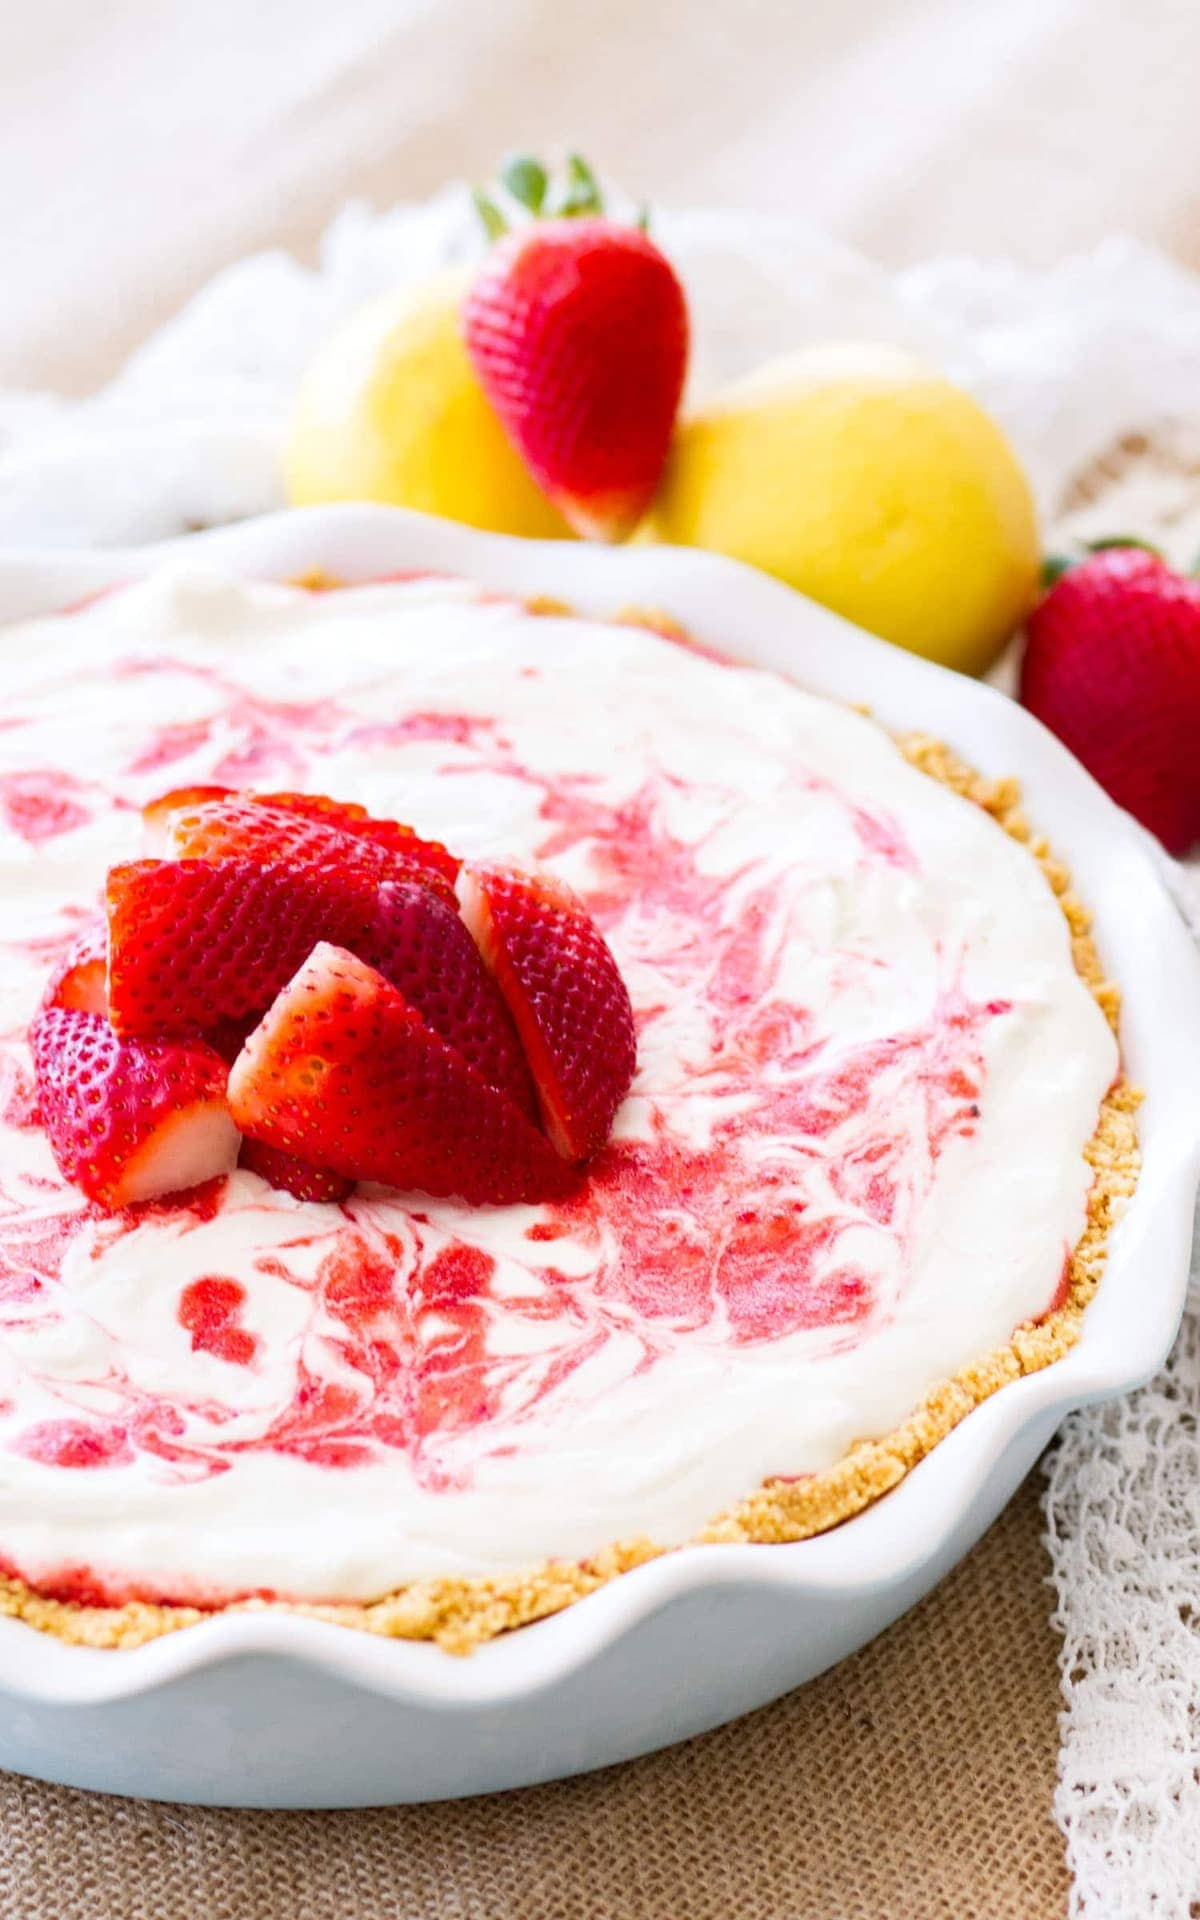 Strawberry Lemonade Pie surrounded by strawberries and lemons. This icebox pie is sweet, a little tangy, and the perfect no-bake dessert for summer!